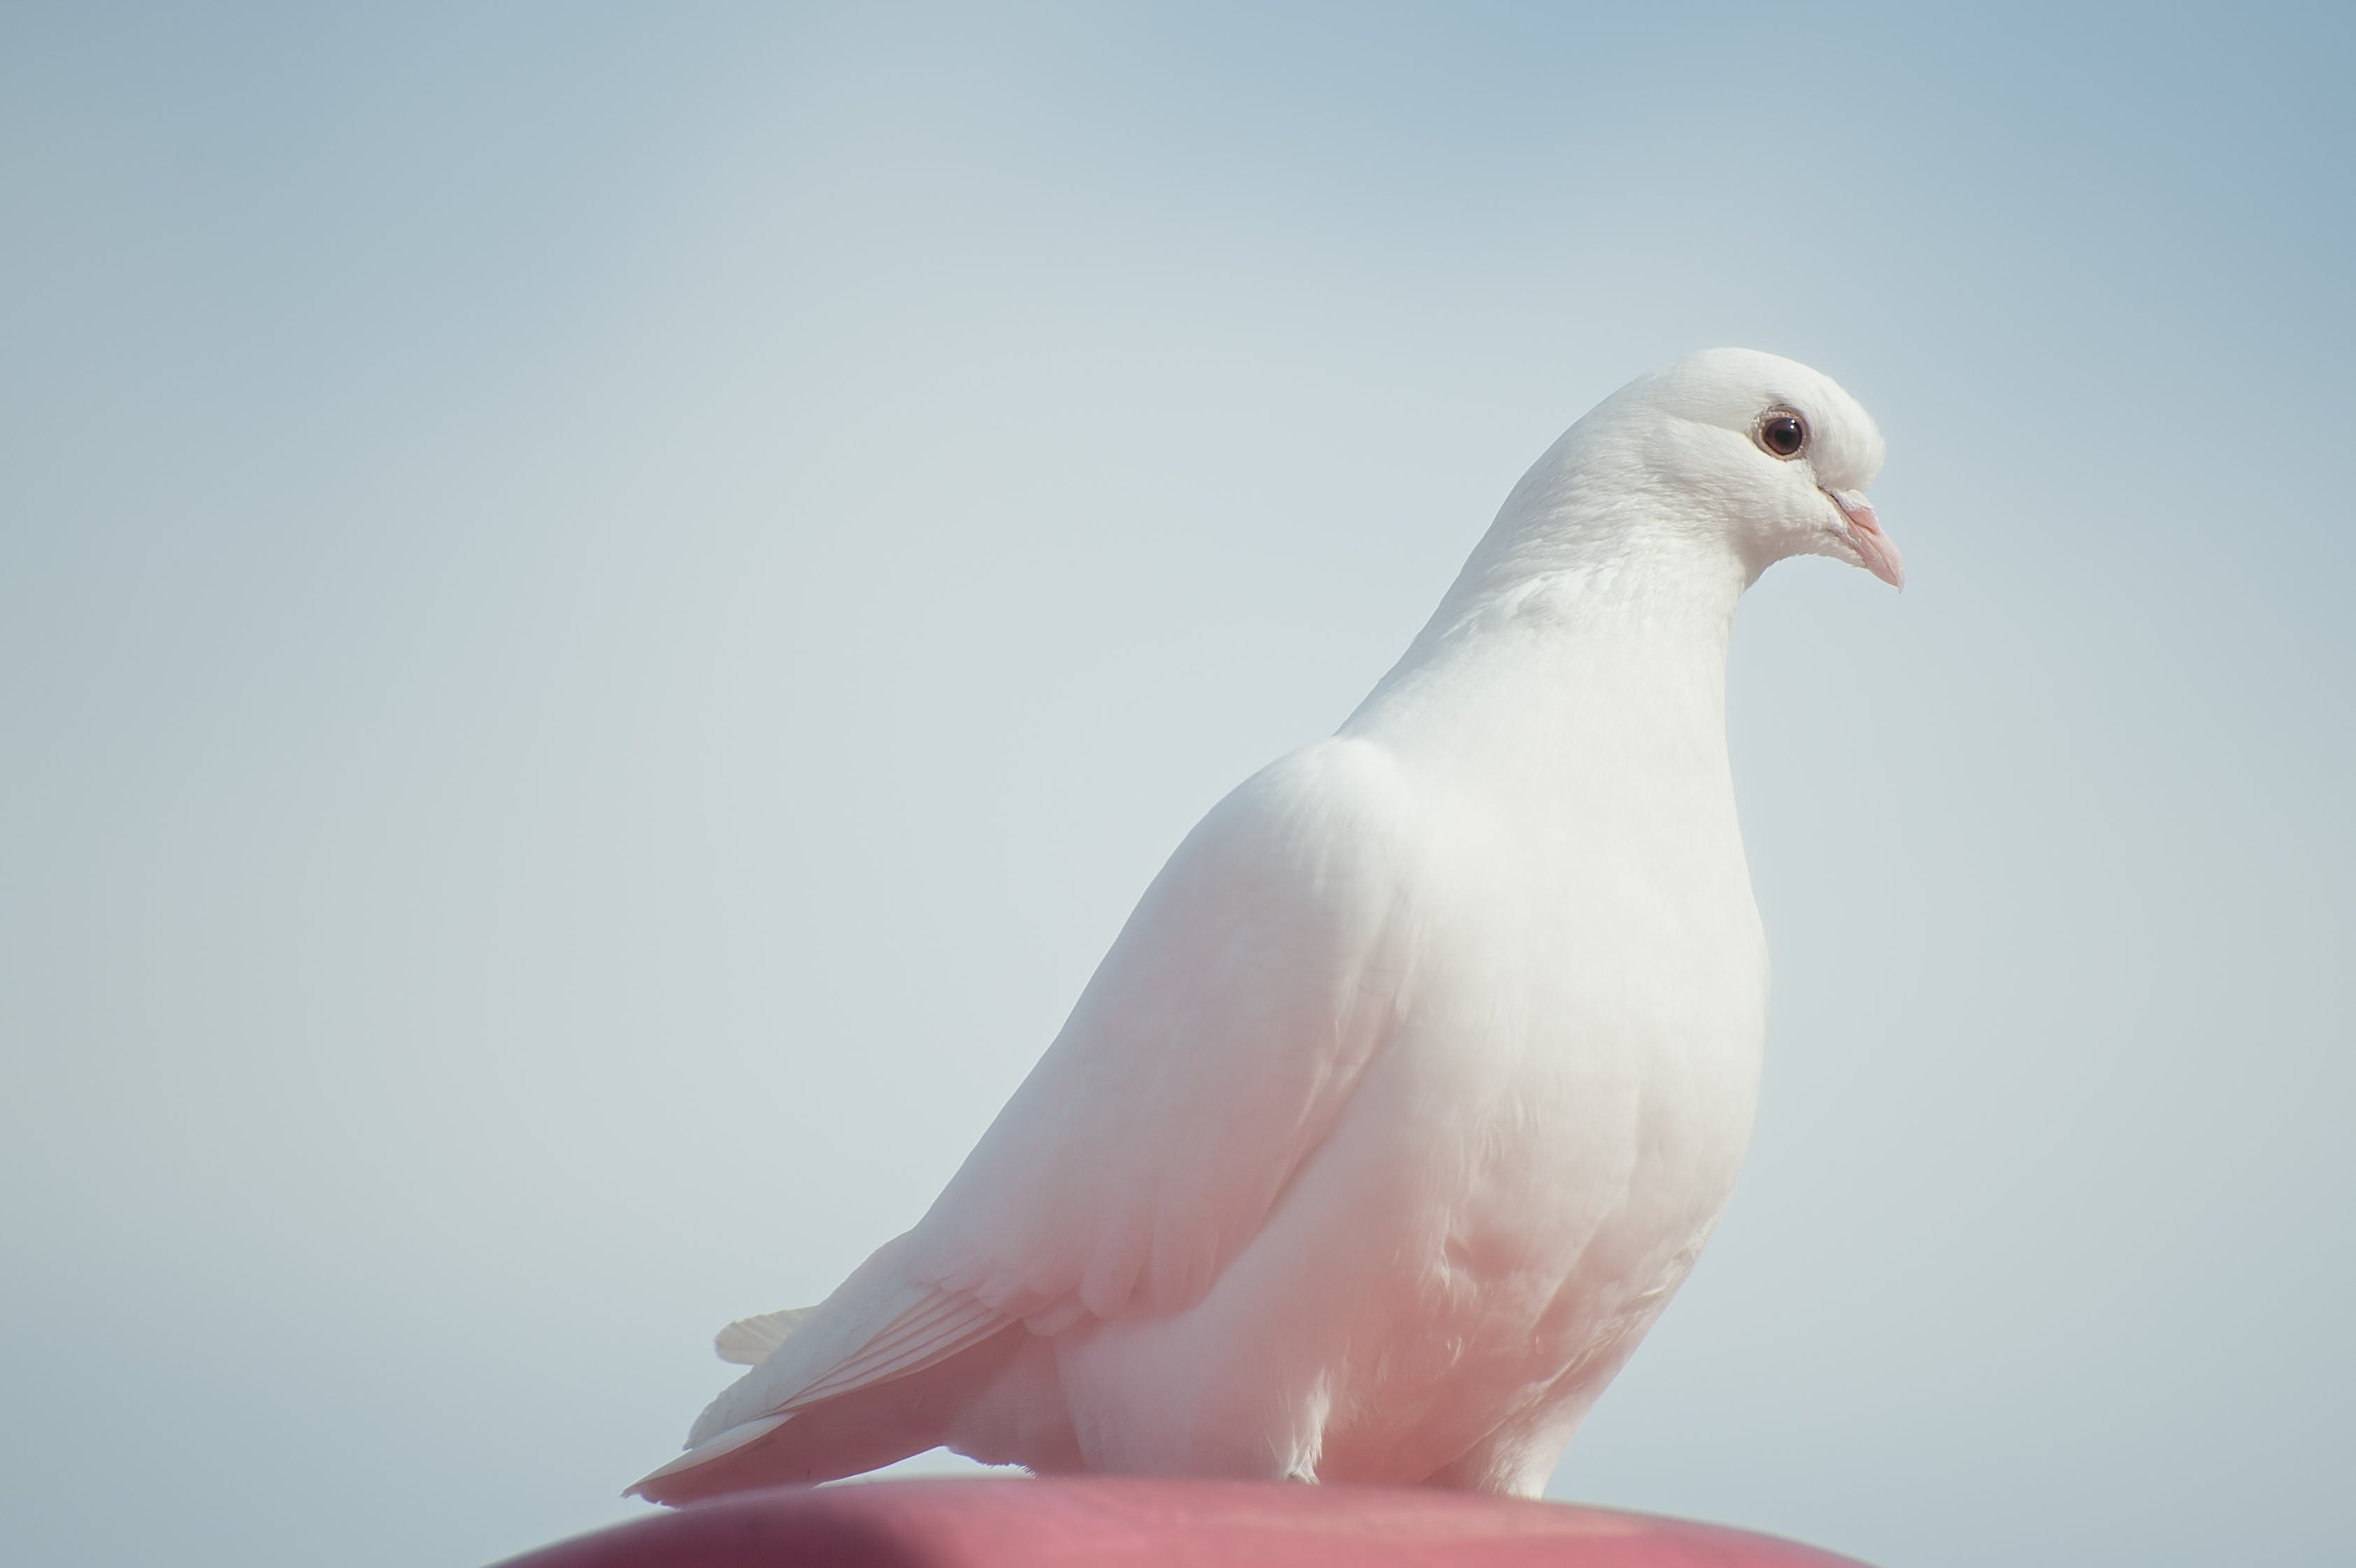 White Dove on Brown Surface Under Blue Sky